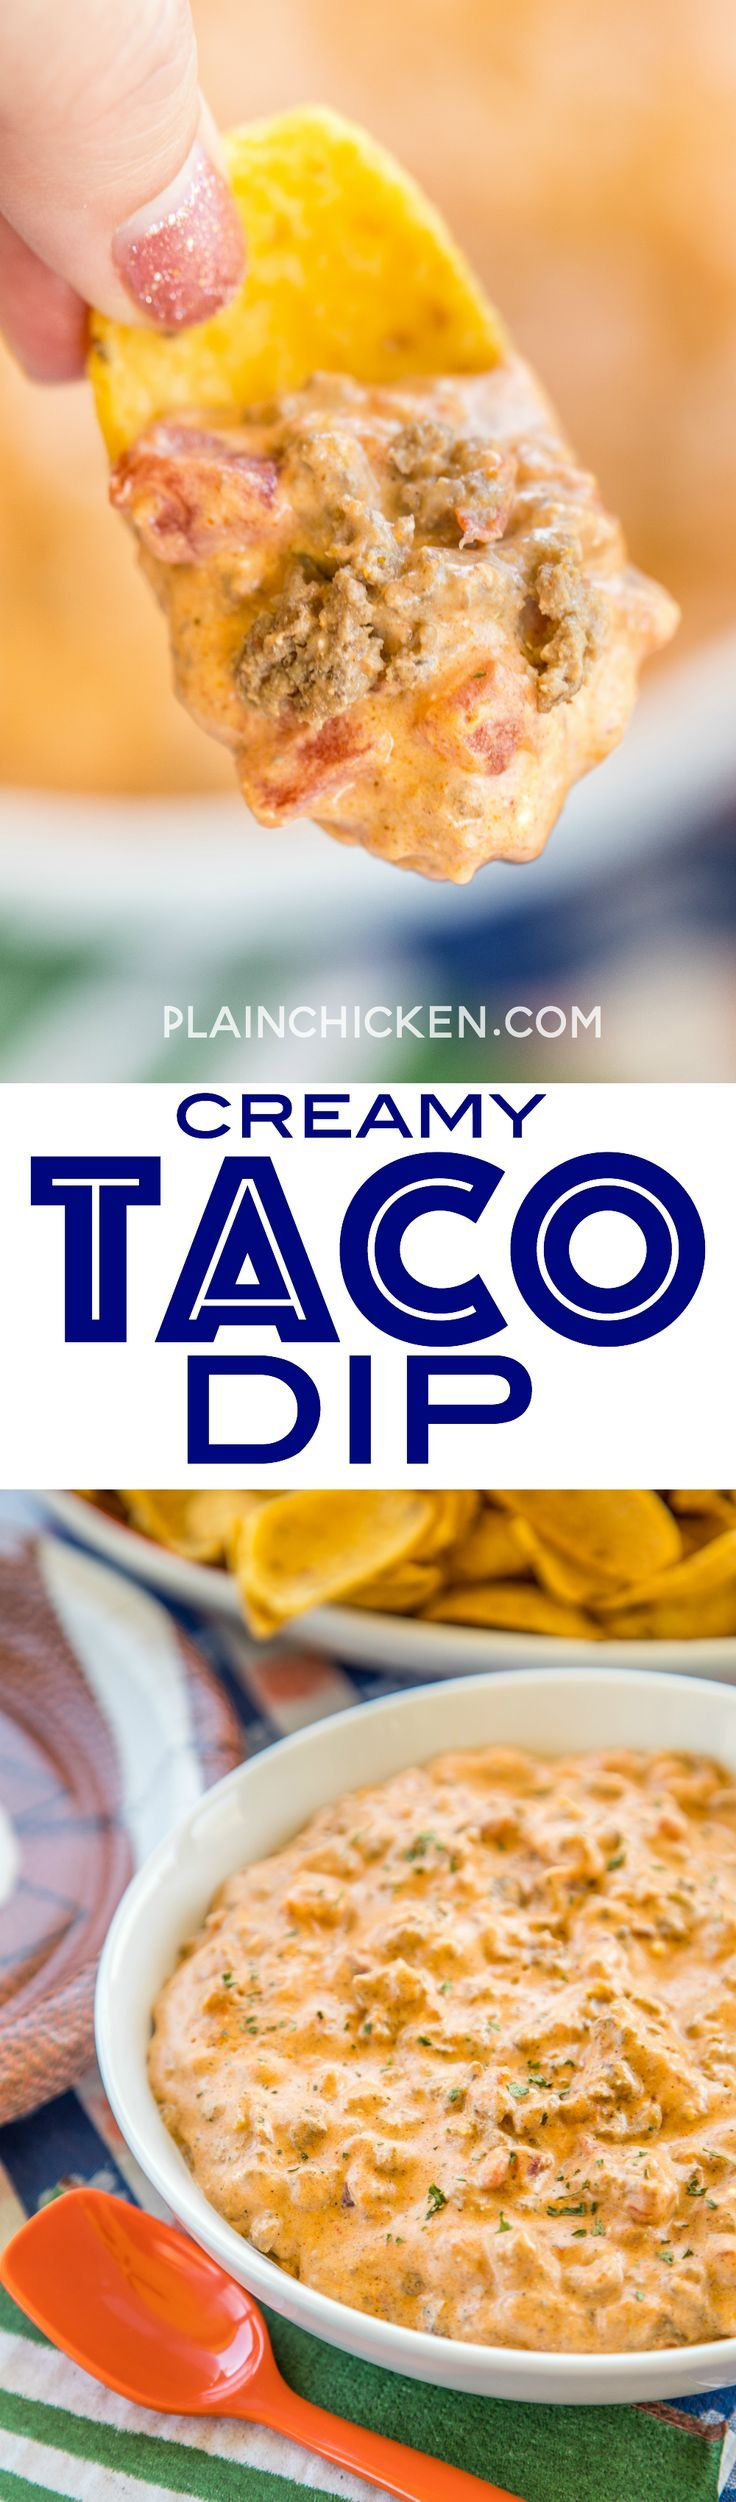 Creamy Taco Dip - only 4 ingredients and it's ready in 5 minutes!!! People go nuts over this easy Mexican dip recipe!! Serve with Fritos, tortilla scoops, celery or bell pepper slices. You might want to double the recipe, this is always the first thing to